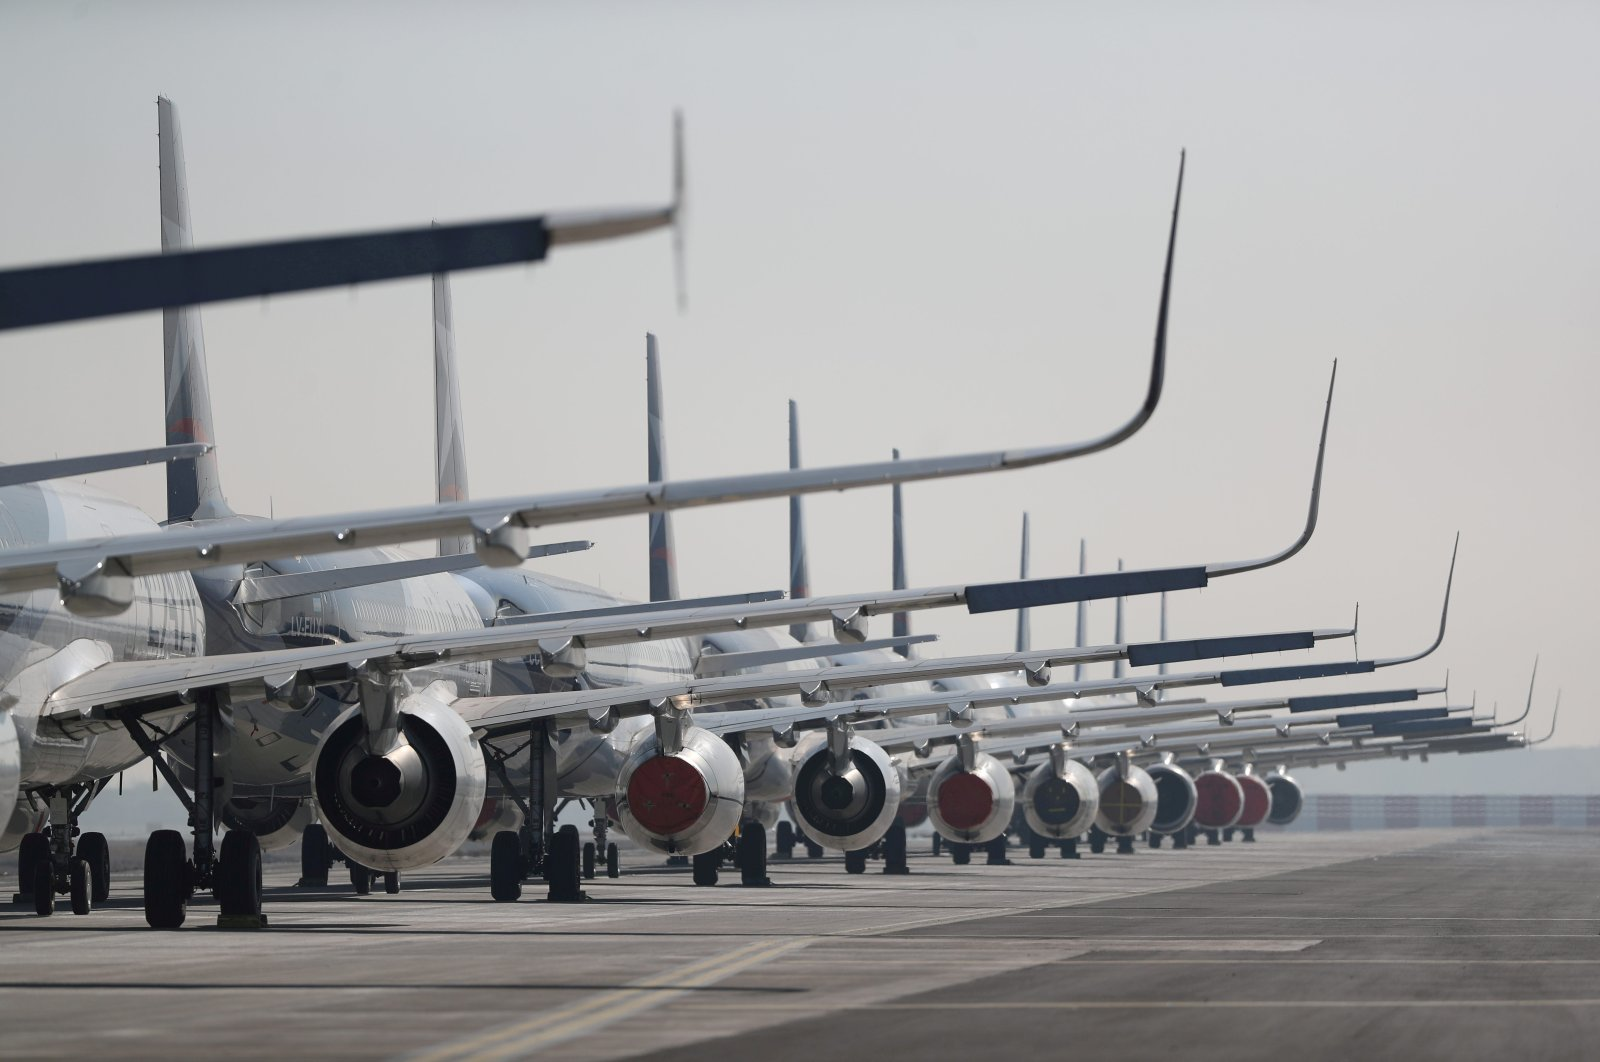 Passenger planes parked on a runway are seen during a general quarantine amid the spread of the coronavirus, at the Arturo Merino Benitez International Airport, in Santiago, Chile May 26, 2020. (Reuters Photo)